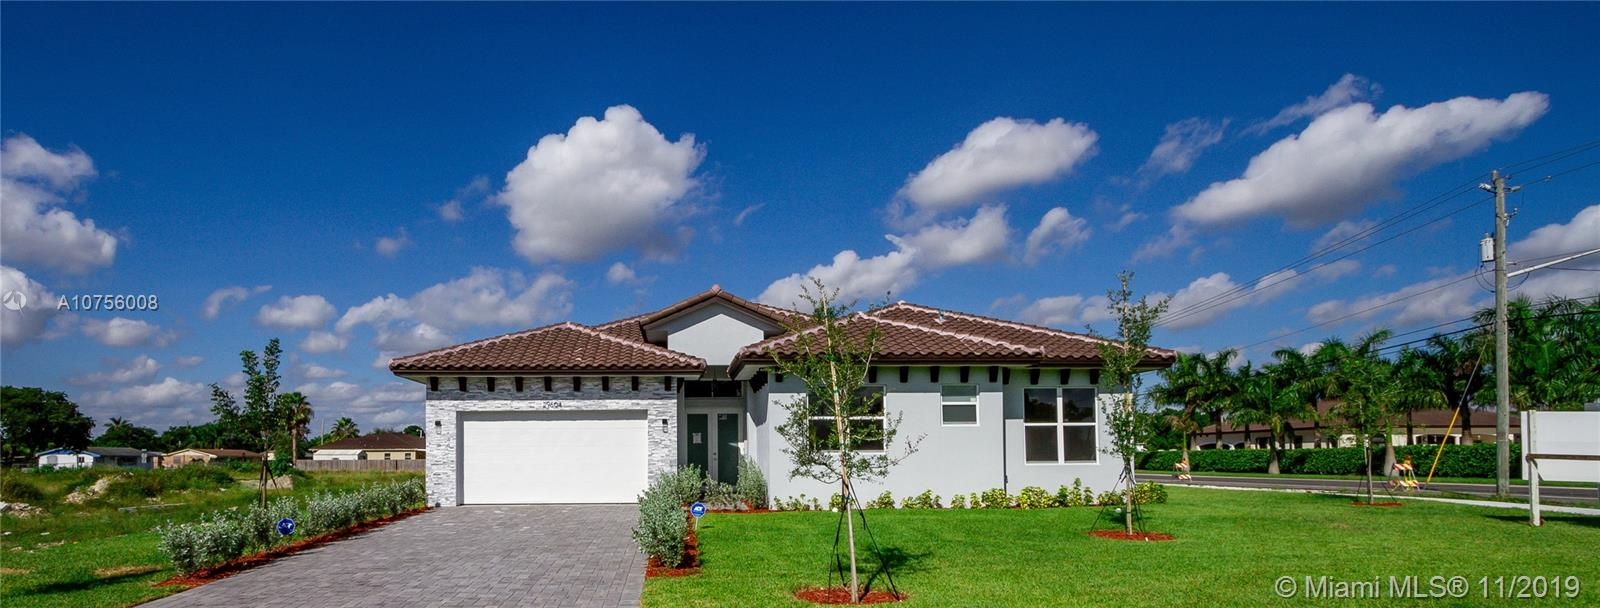 29646 SW 168 ct,Homestead  FL